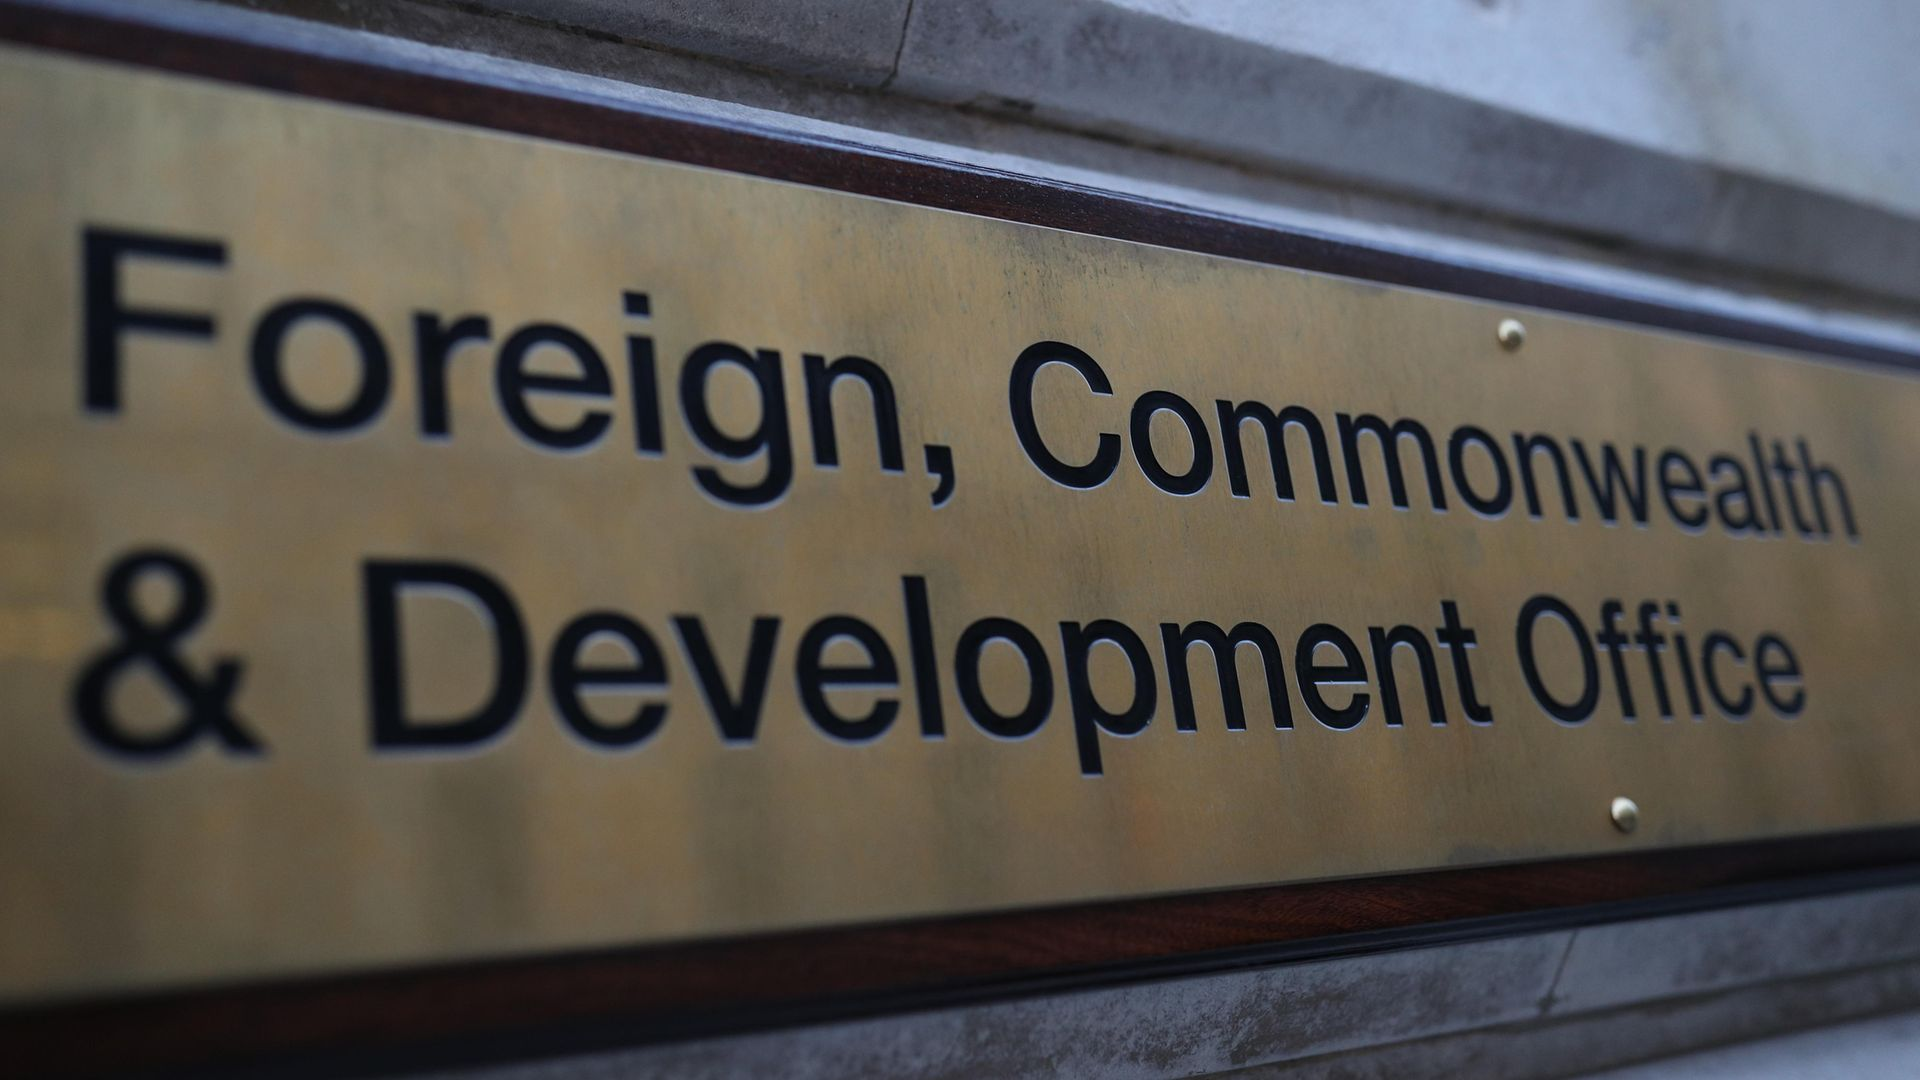 The Foreign, Commonwealth and Development Office in London. - Credit: PA